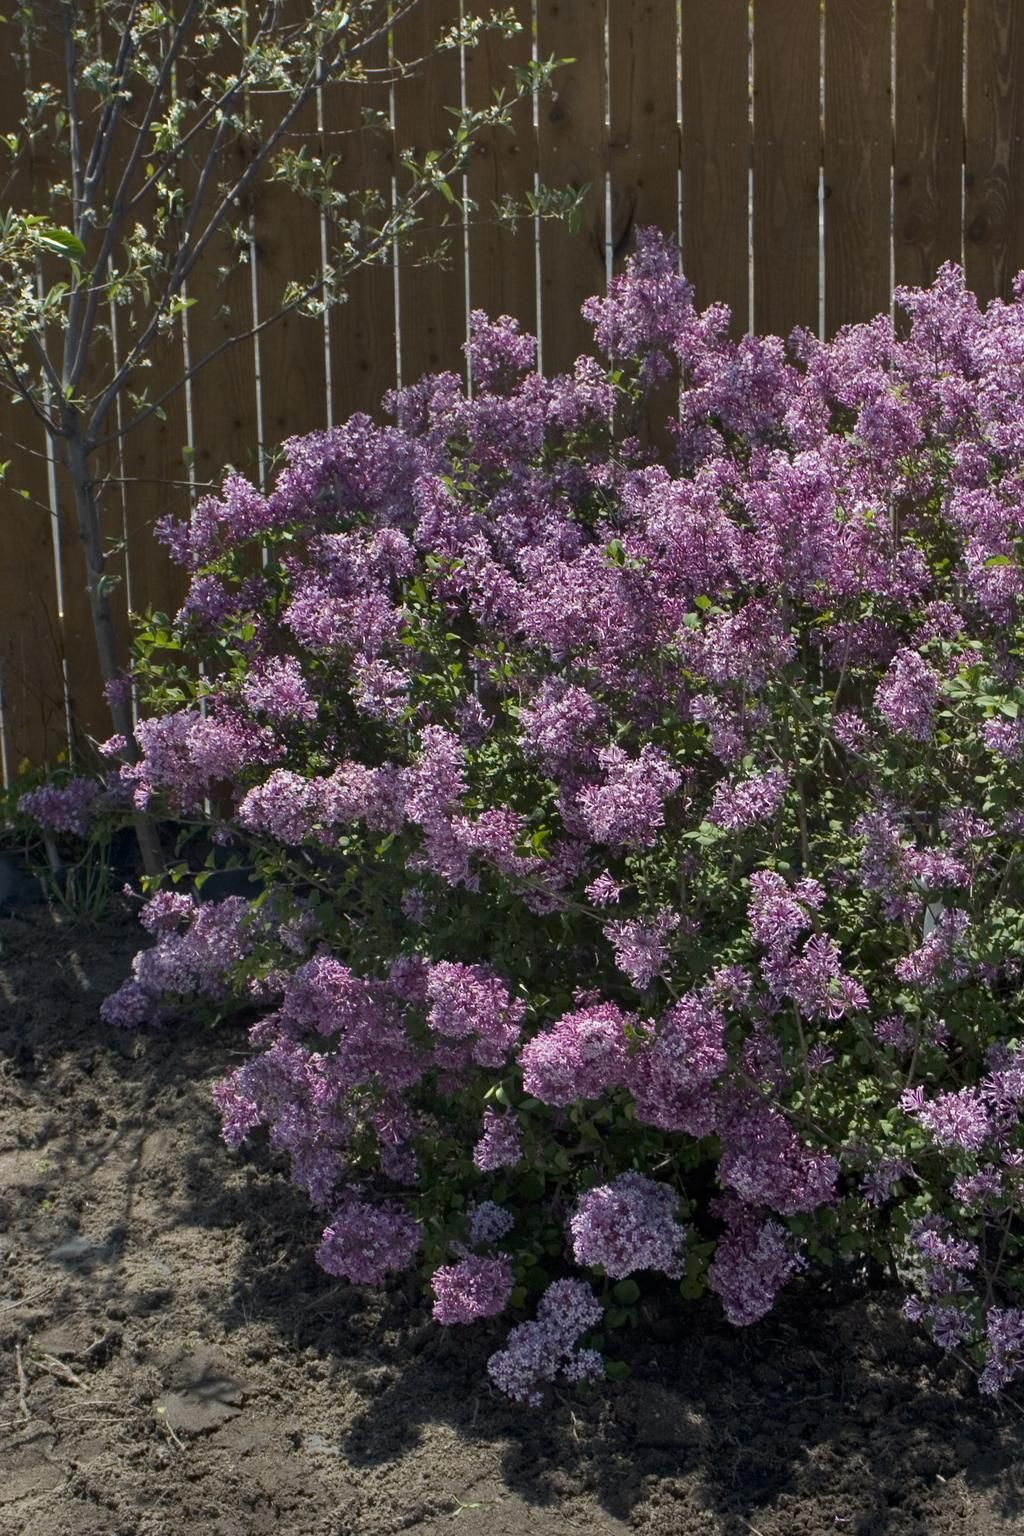 Boomerang Lilac Blooms In The Spring Throughought The